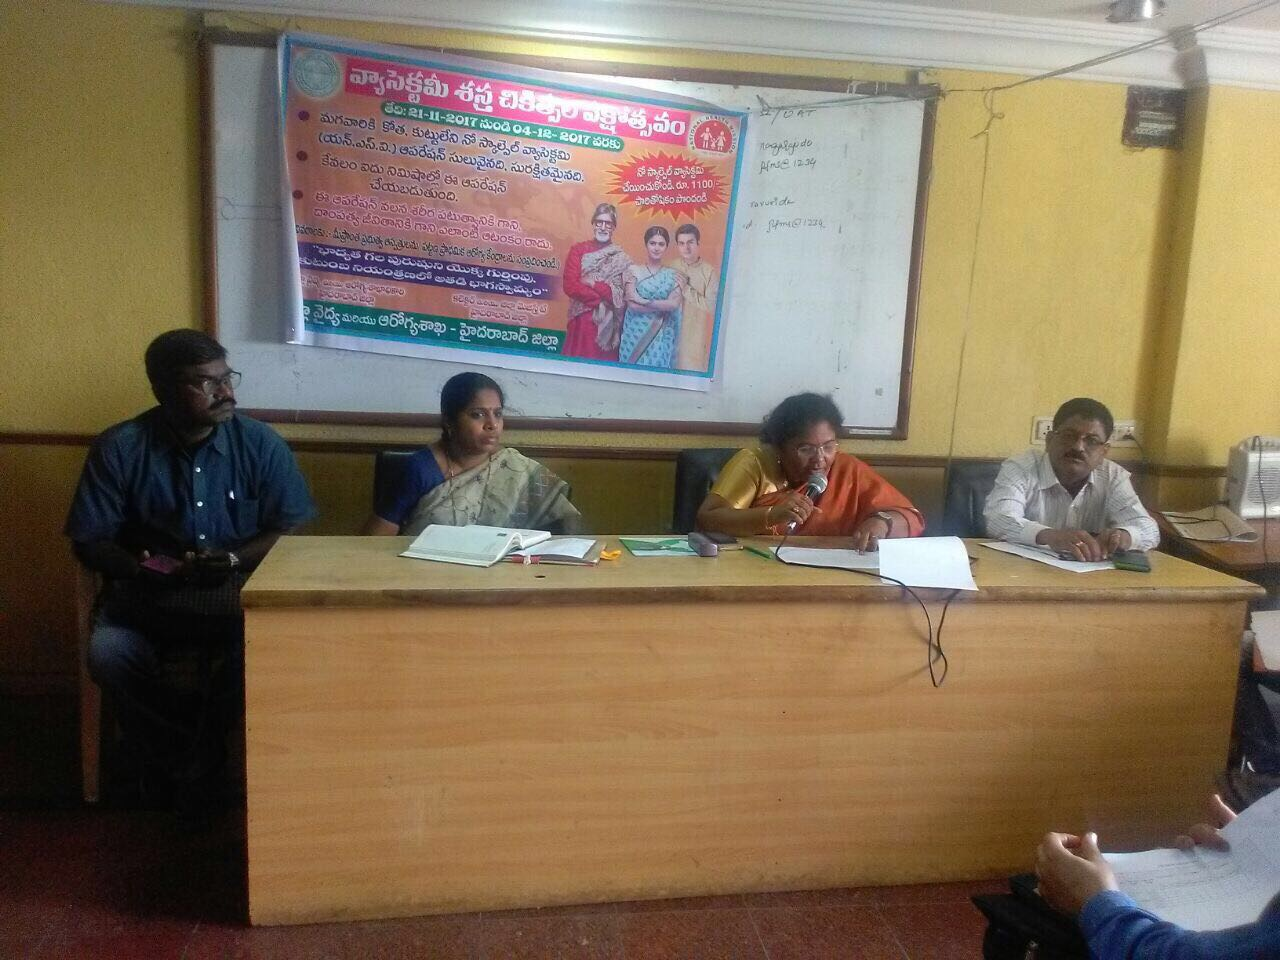 Telangana observes Vasectomy Fortnight 2017. Sensitisation meeting of Medical Officers held in Hyderabad.